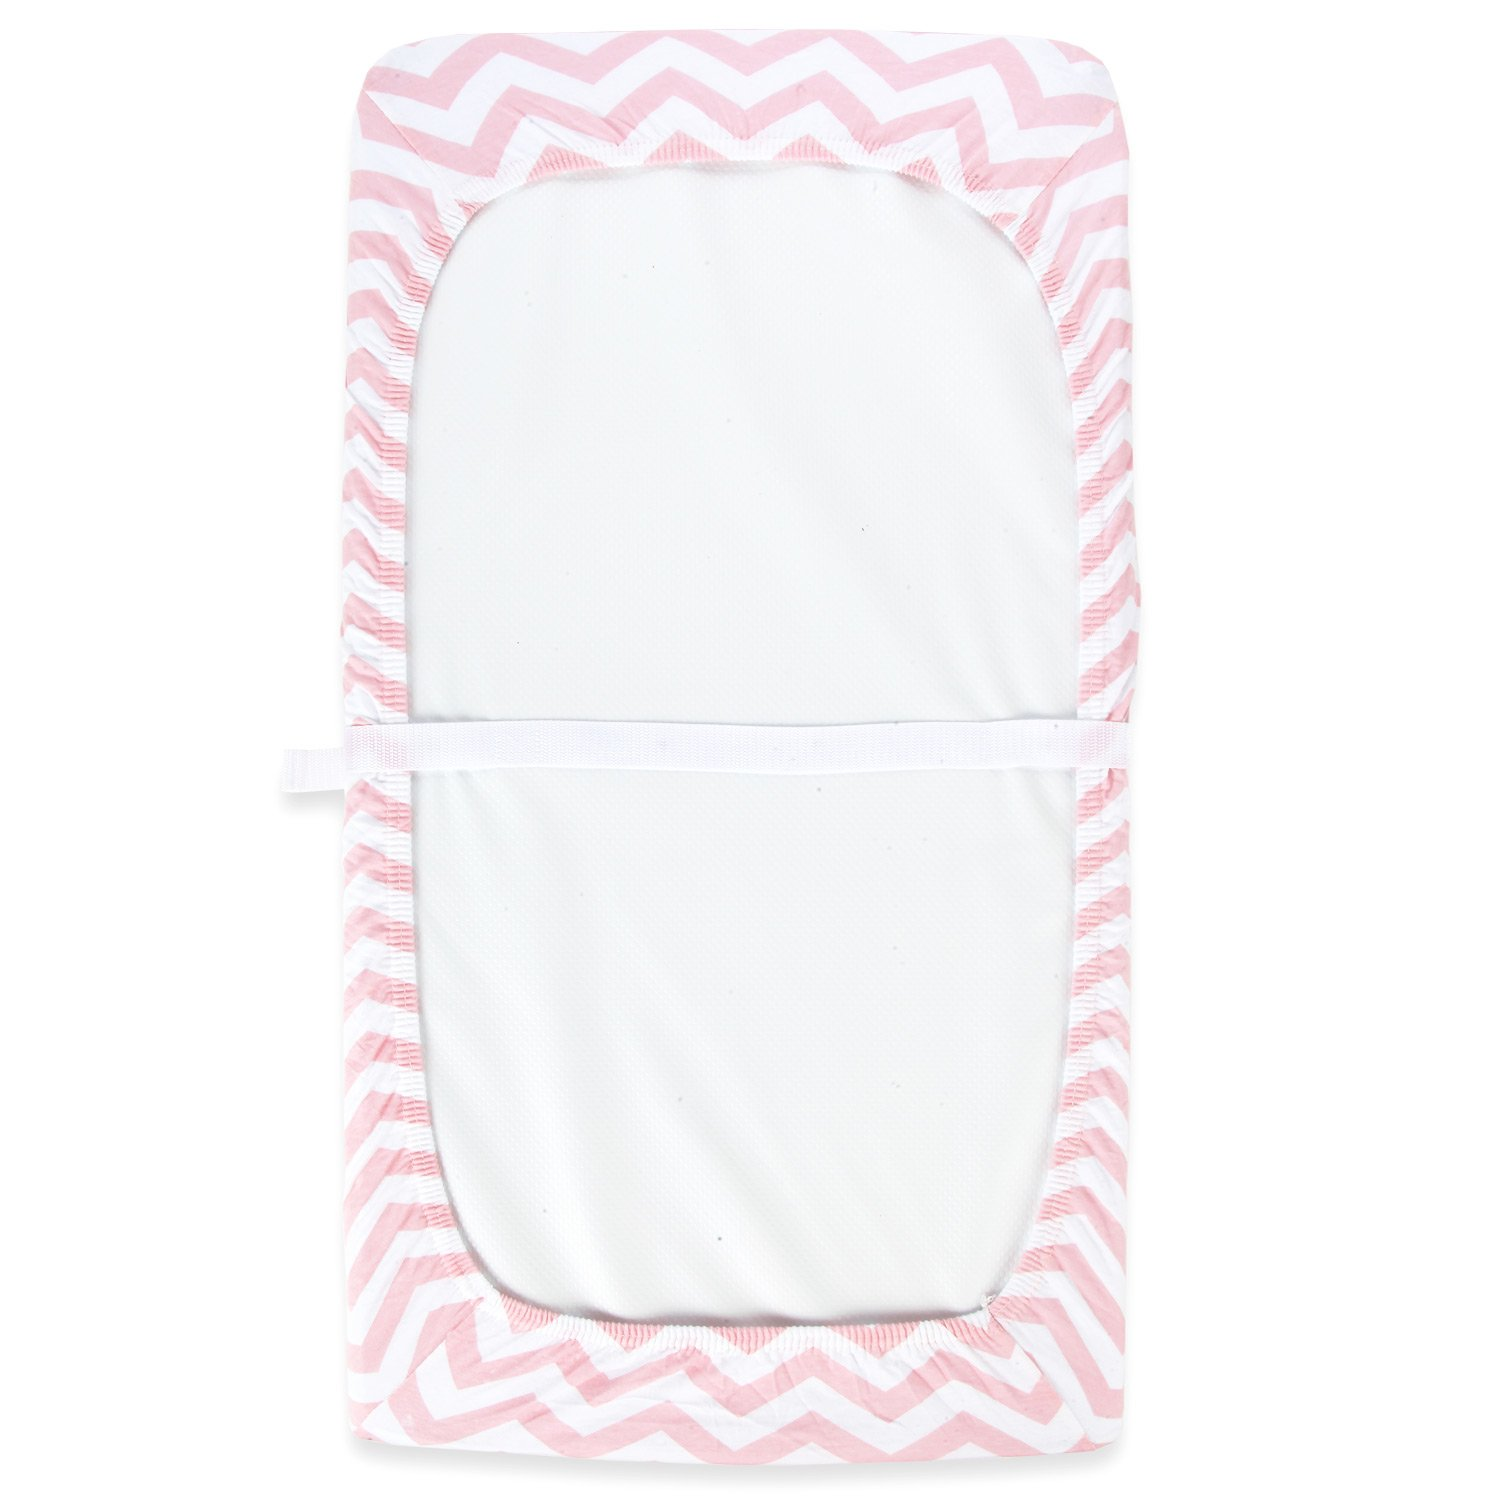 Cuddly Cubs Diaper Changing Table Pad Cover Set For Baby Girl | Soft & Breathable 100% Jersey Cotton | Adorable Unisex Patterns & Fitted Elastic Design | Cute Nursery & Cradle Bedding Sheets 2-Pack by Cuddly Cubs (Image #4)